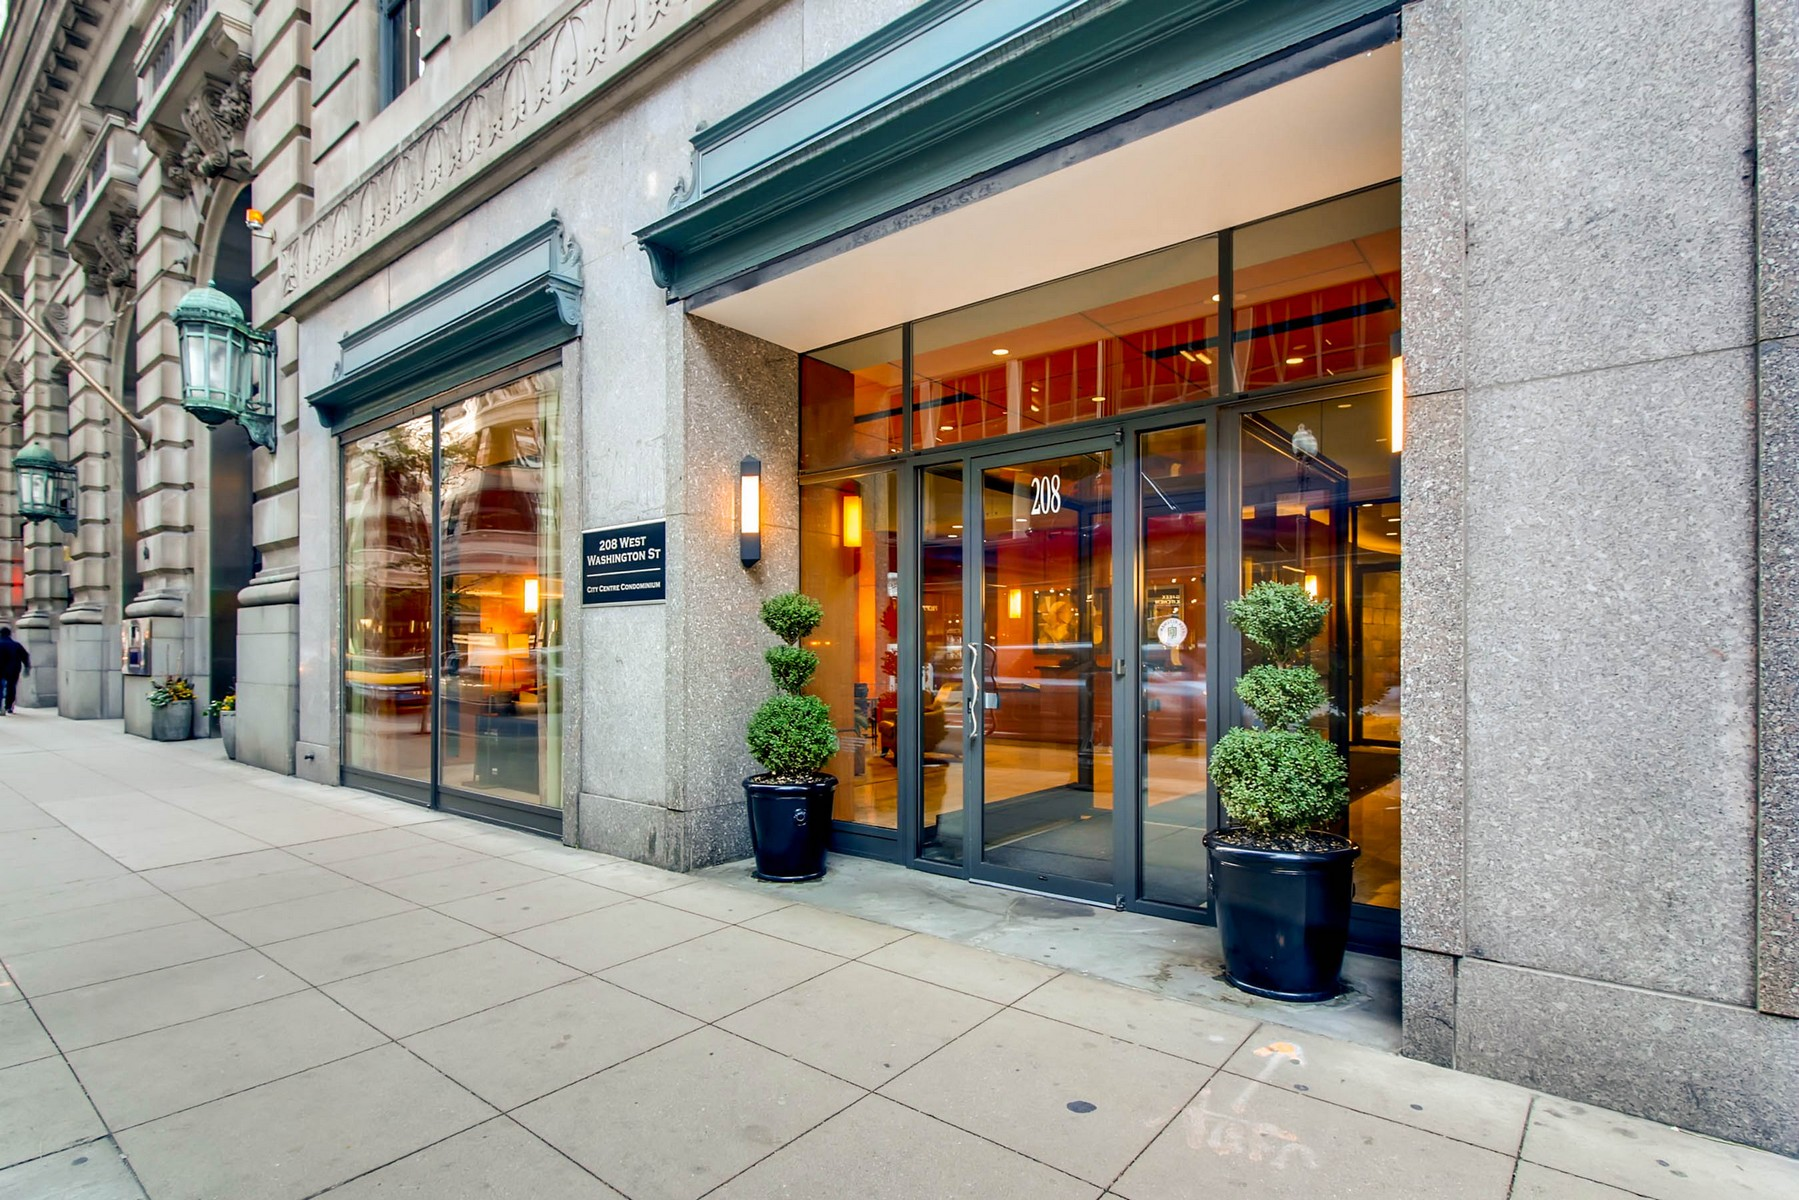 Condominium for Sale at Pristine, Light-Filled Condo in the Loop 208 W Washinton Street Unit 905 Chicago, Illinois, 60606 United States